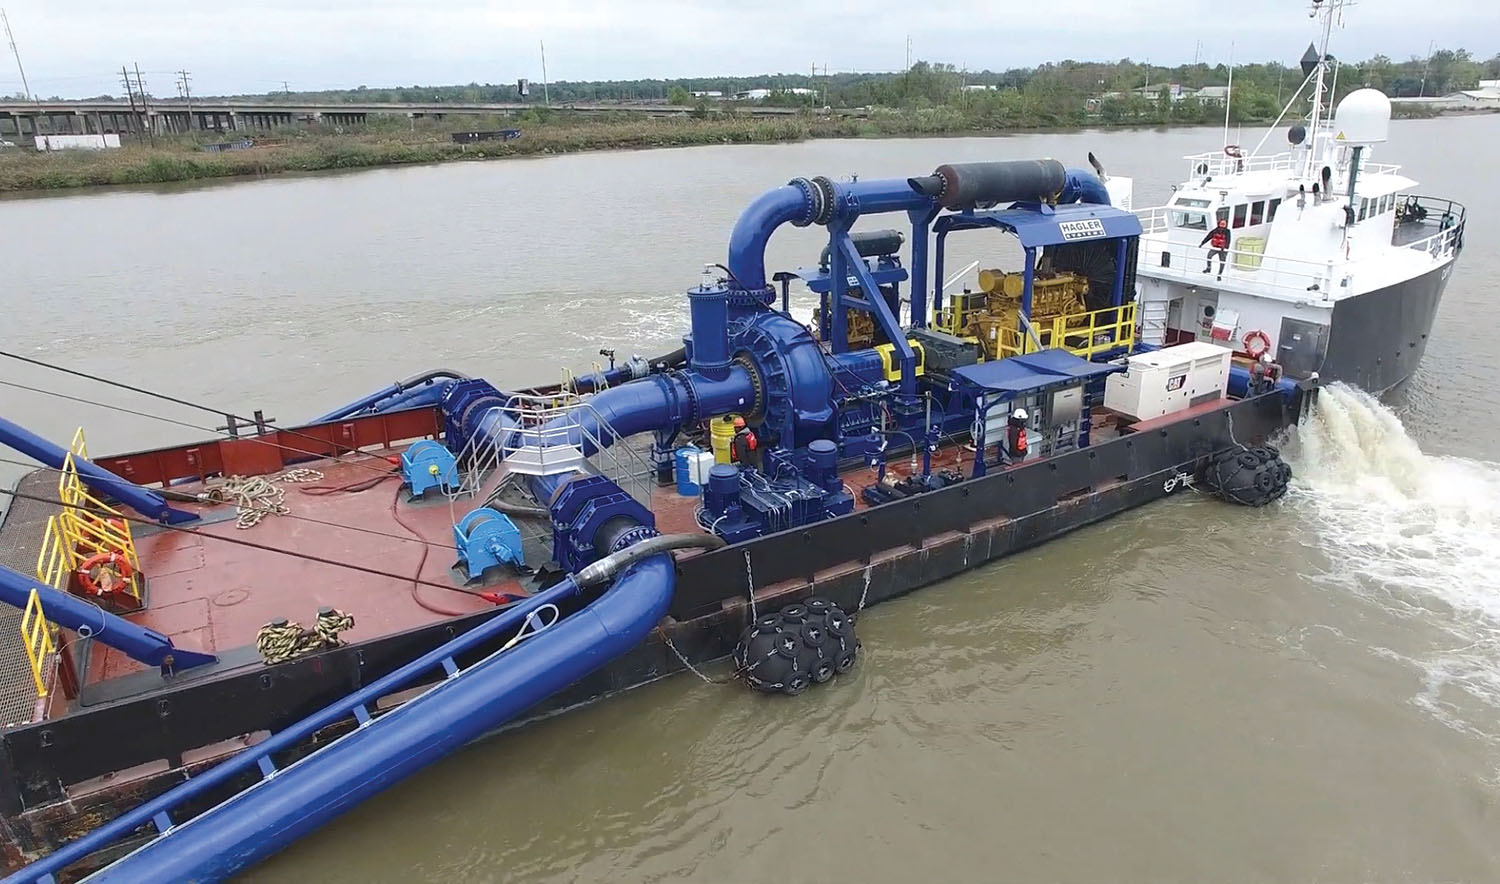 The vessel Captain John Graham tows the dredge Arulaq. The blue piping that is visible represents most of the dredge works. The fine silt sprays on the equipment, which means the deckhands are almost always constantly swabbing the dredge. (Photo courtesy of Brice Civil Contractors)